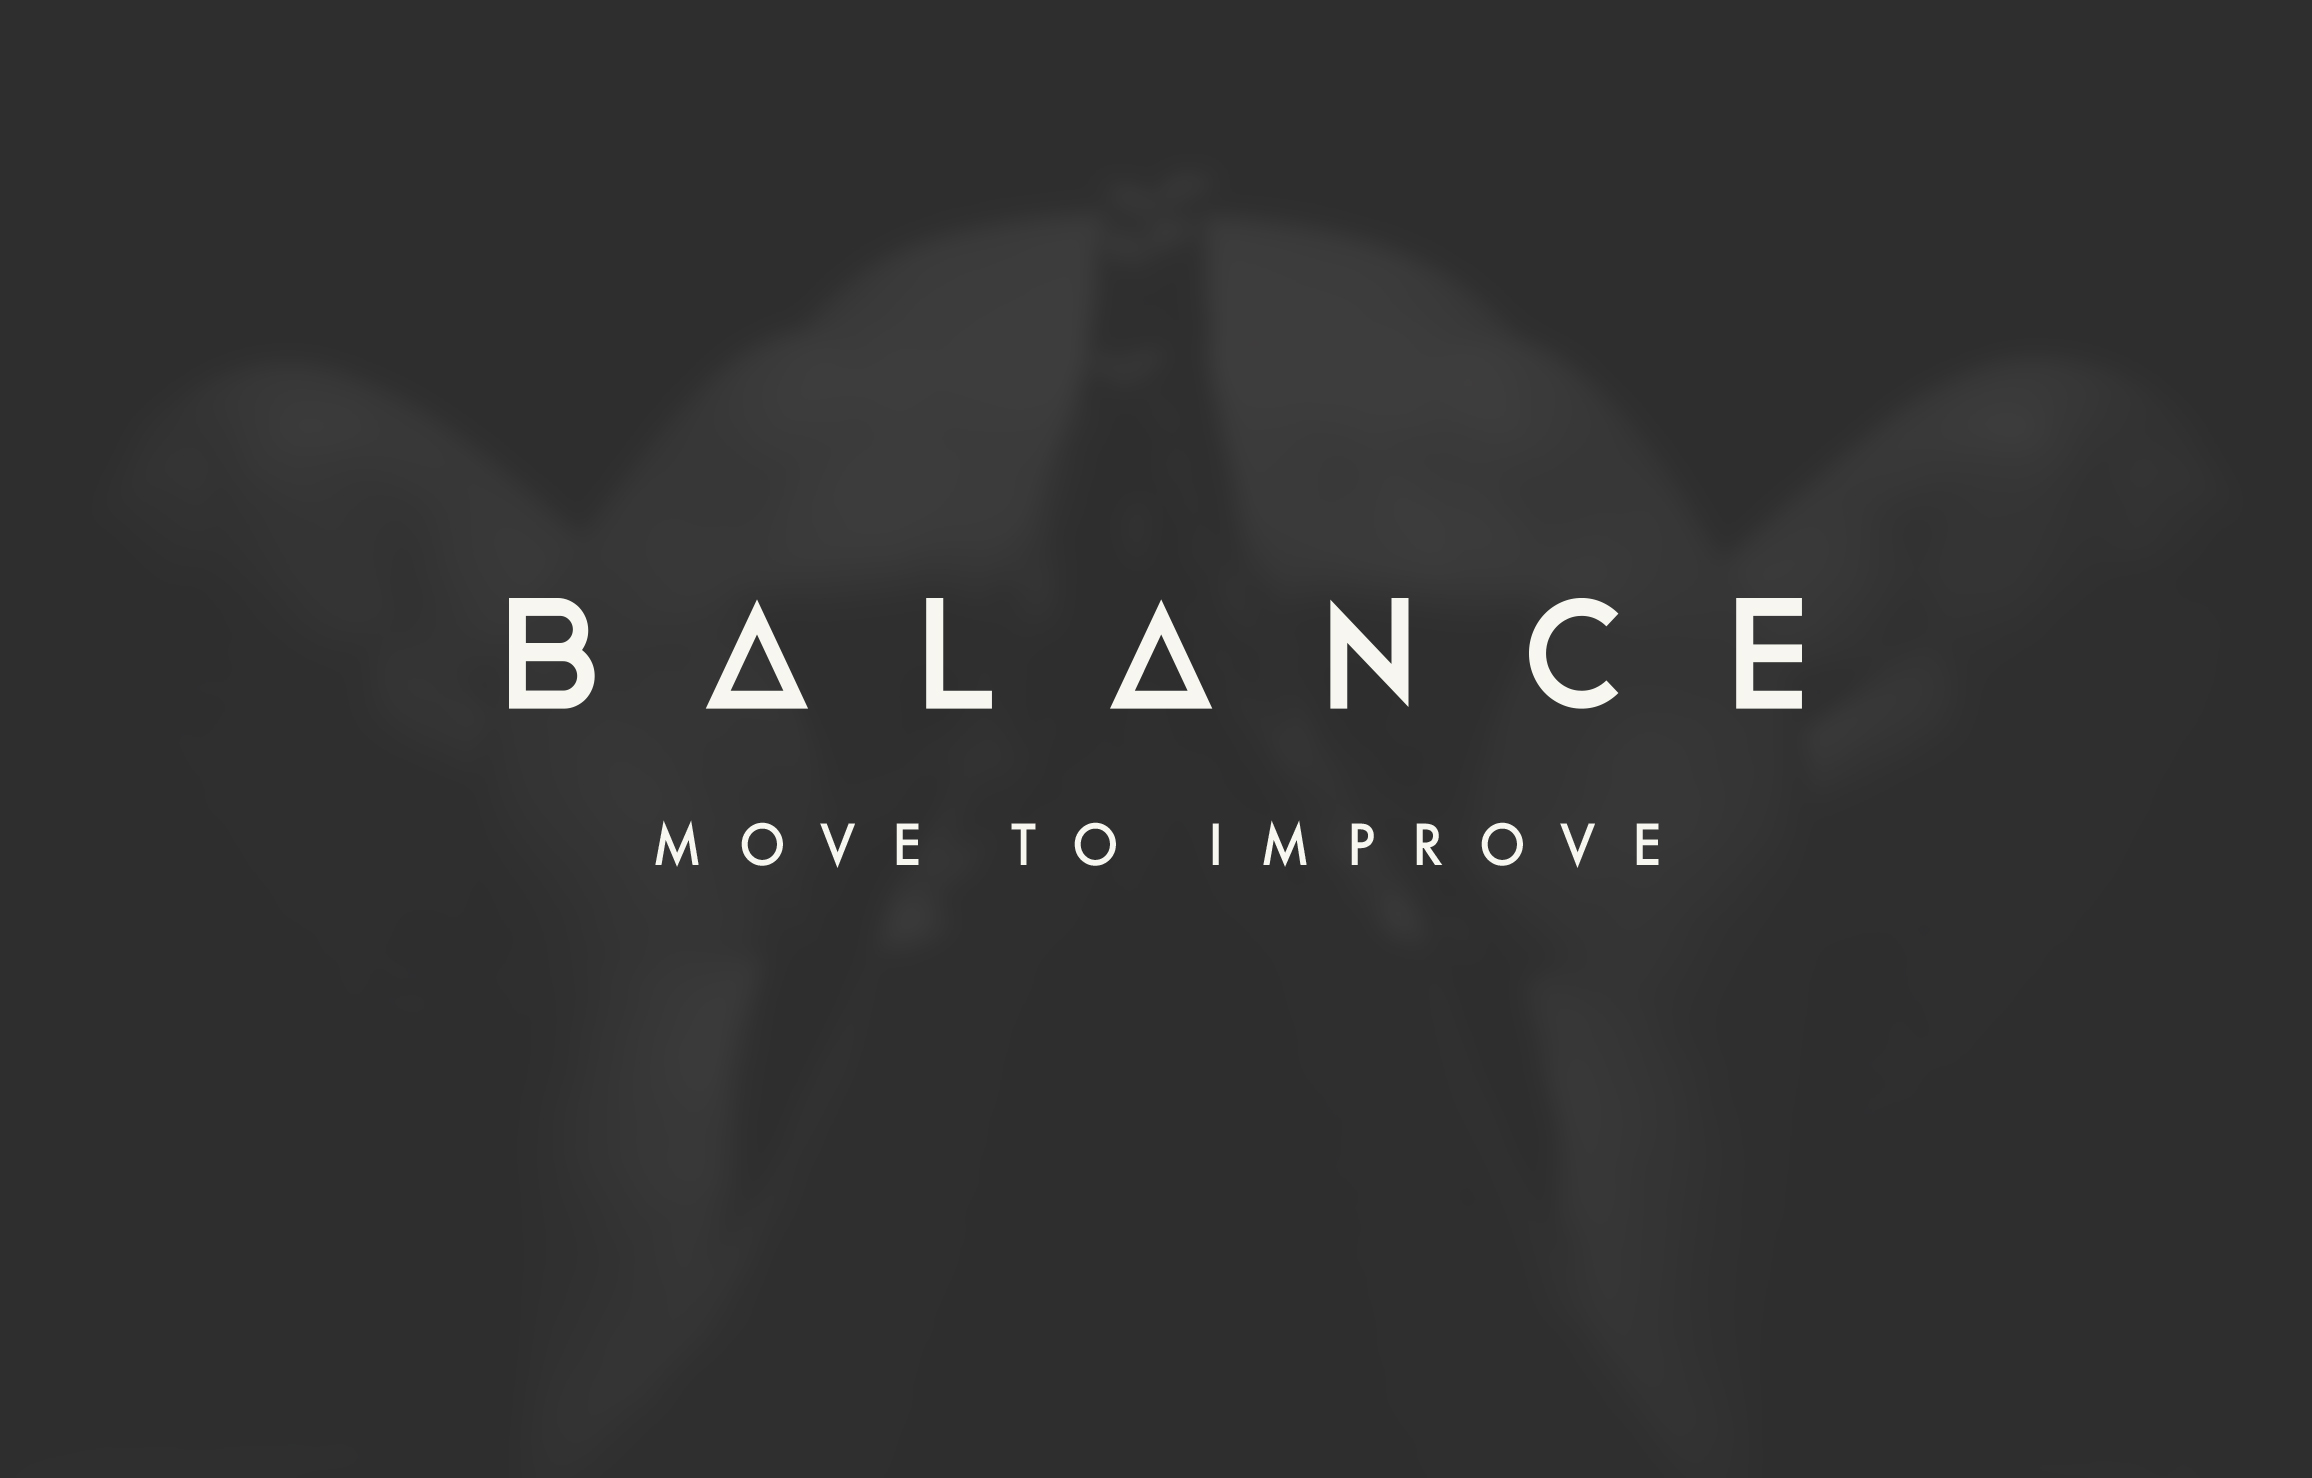 the-balance-group-7.jpg